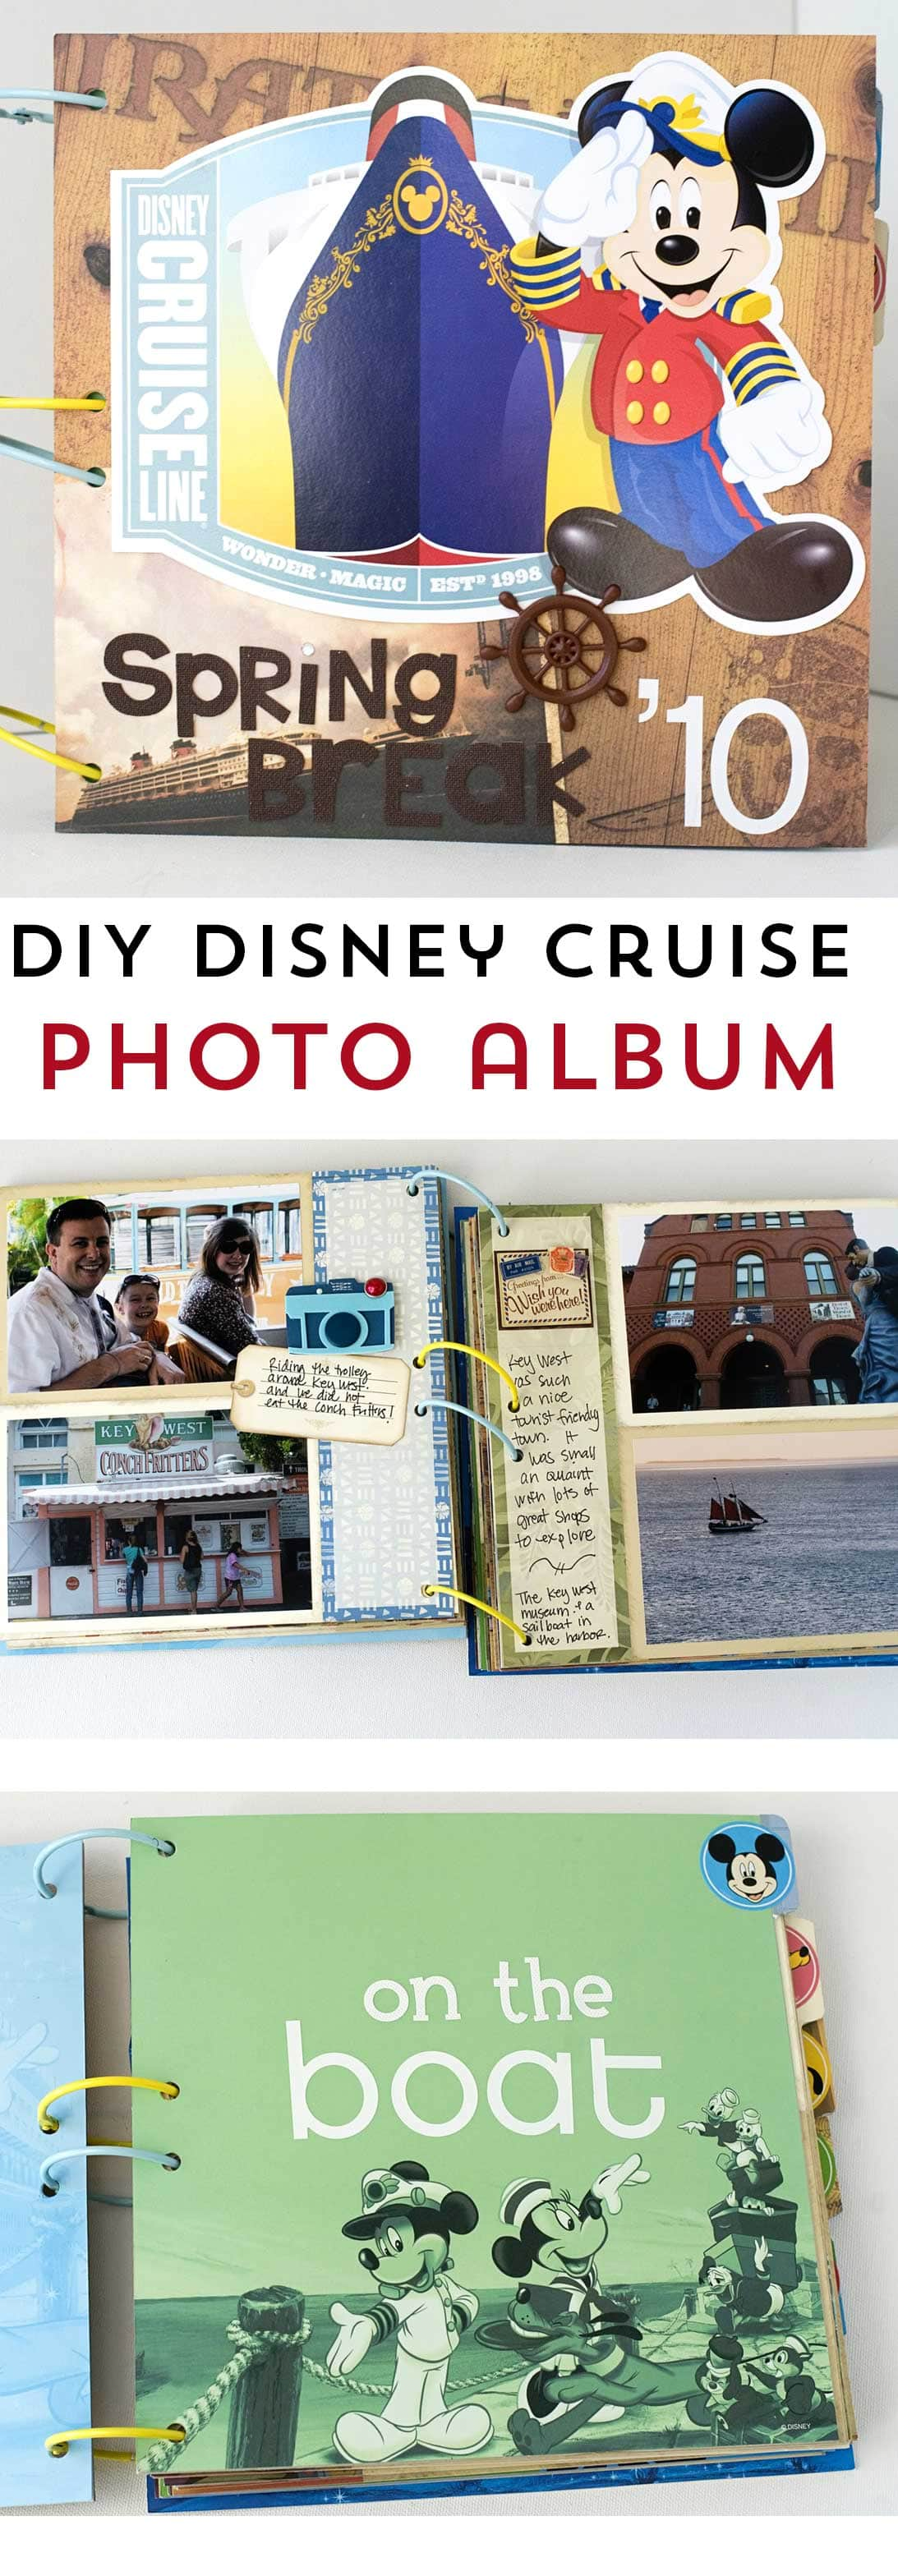 Learn how to easily create a custom photo album or scrapbook of your Disney Cruise Vacation